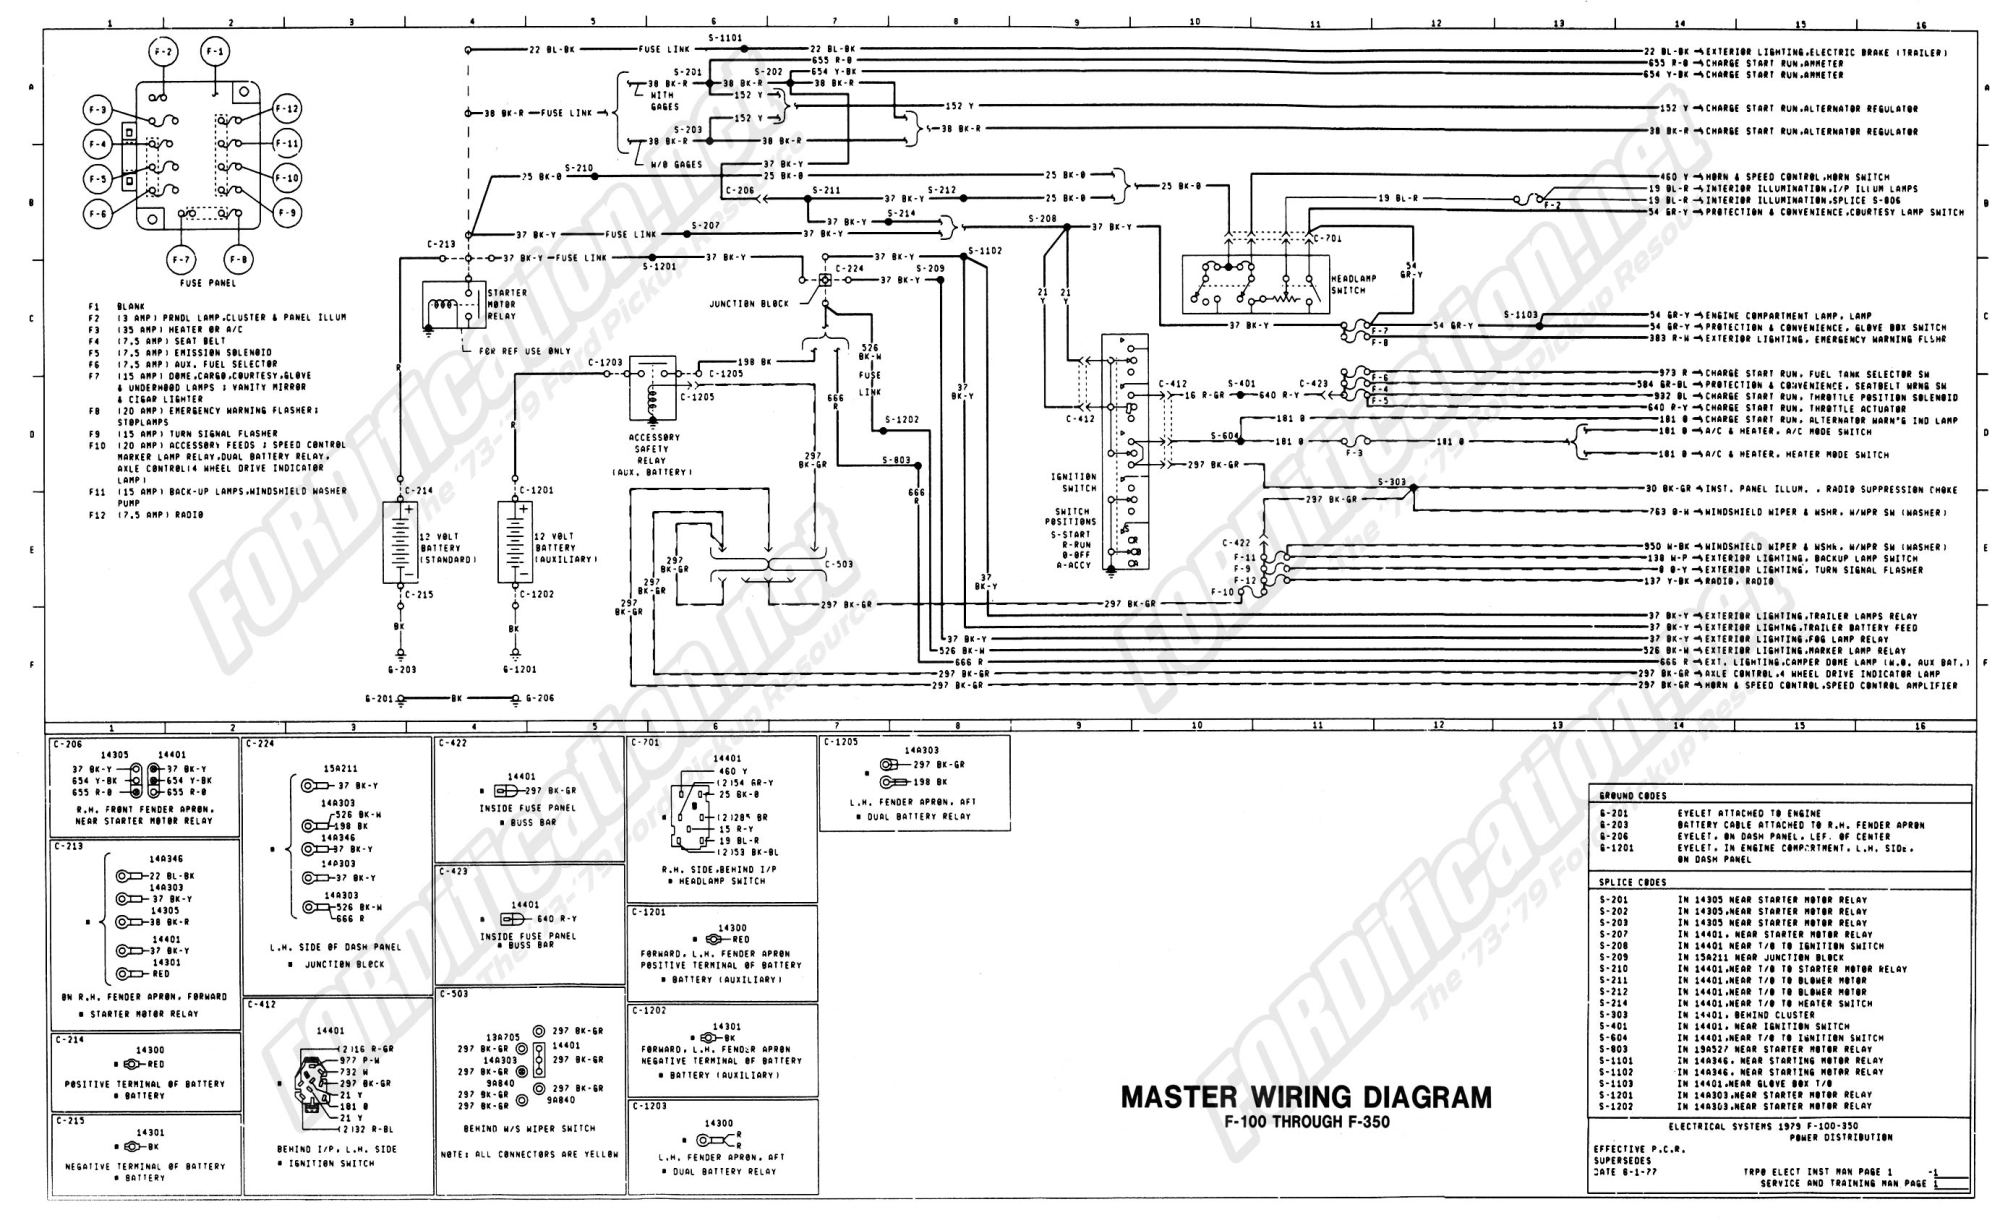 hight resolution of 1973 1979 ford truck wiring diagrams schematics fordification net 1968 mustang wiring diagram 1962 ford radio wiring diagram